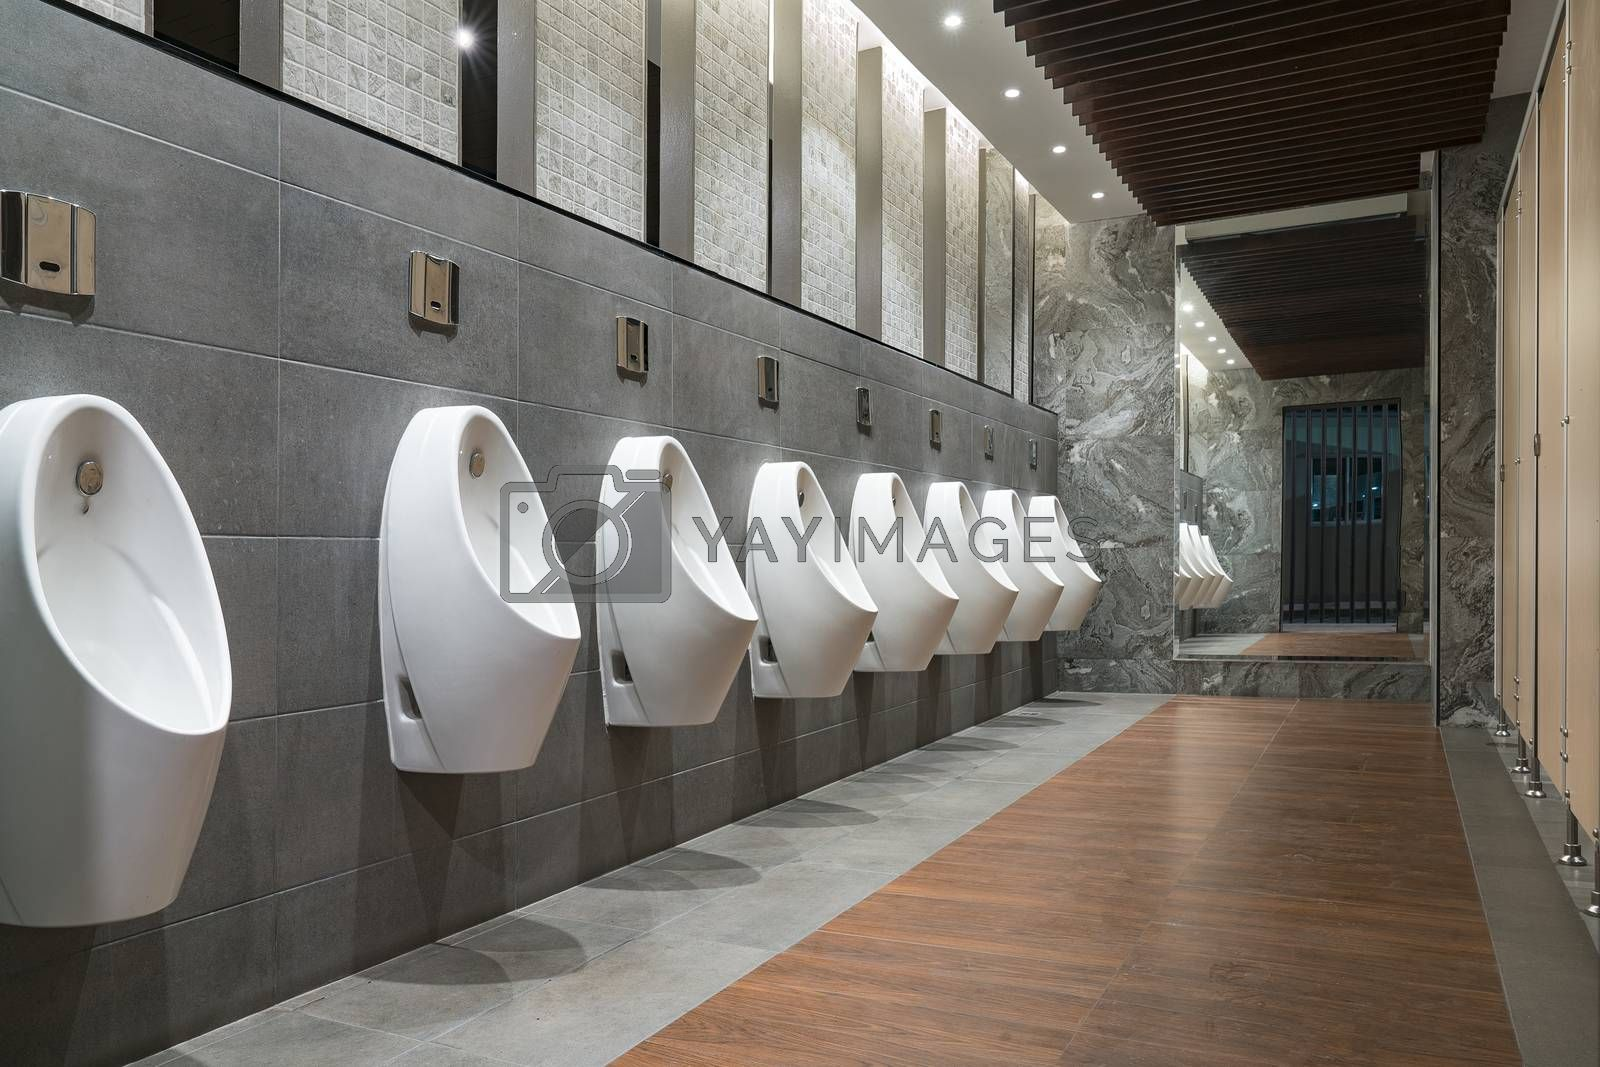 Closeup tile wall in human toilet with toilet, see by urinals and small room.